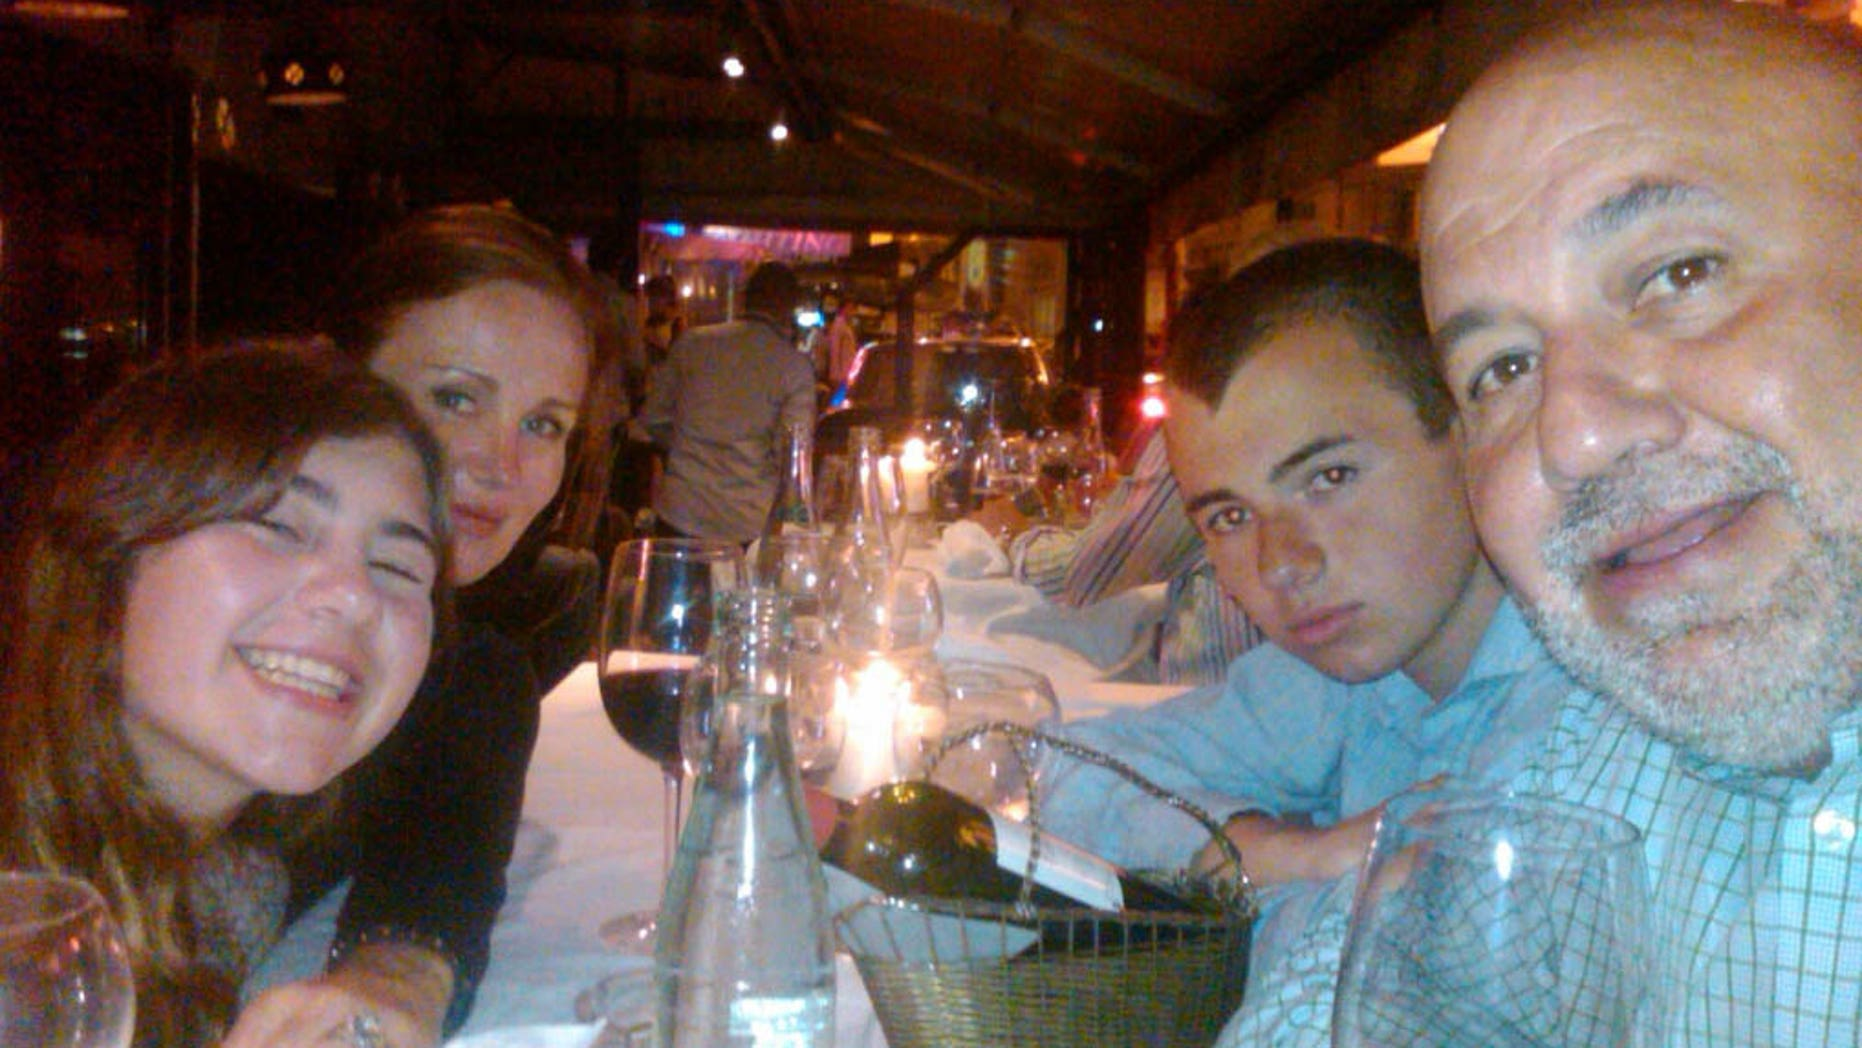 Me with my wife Katarina, my daughter Olivia and my son Ryan in the south of France.